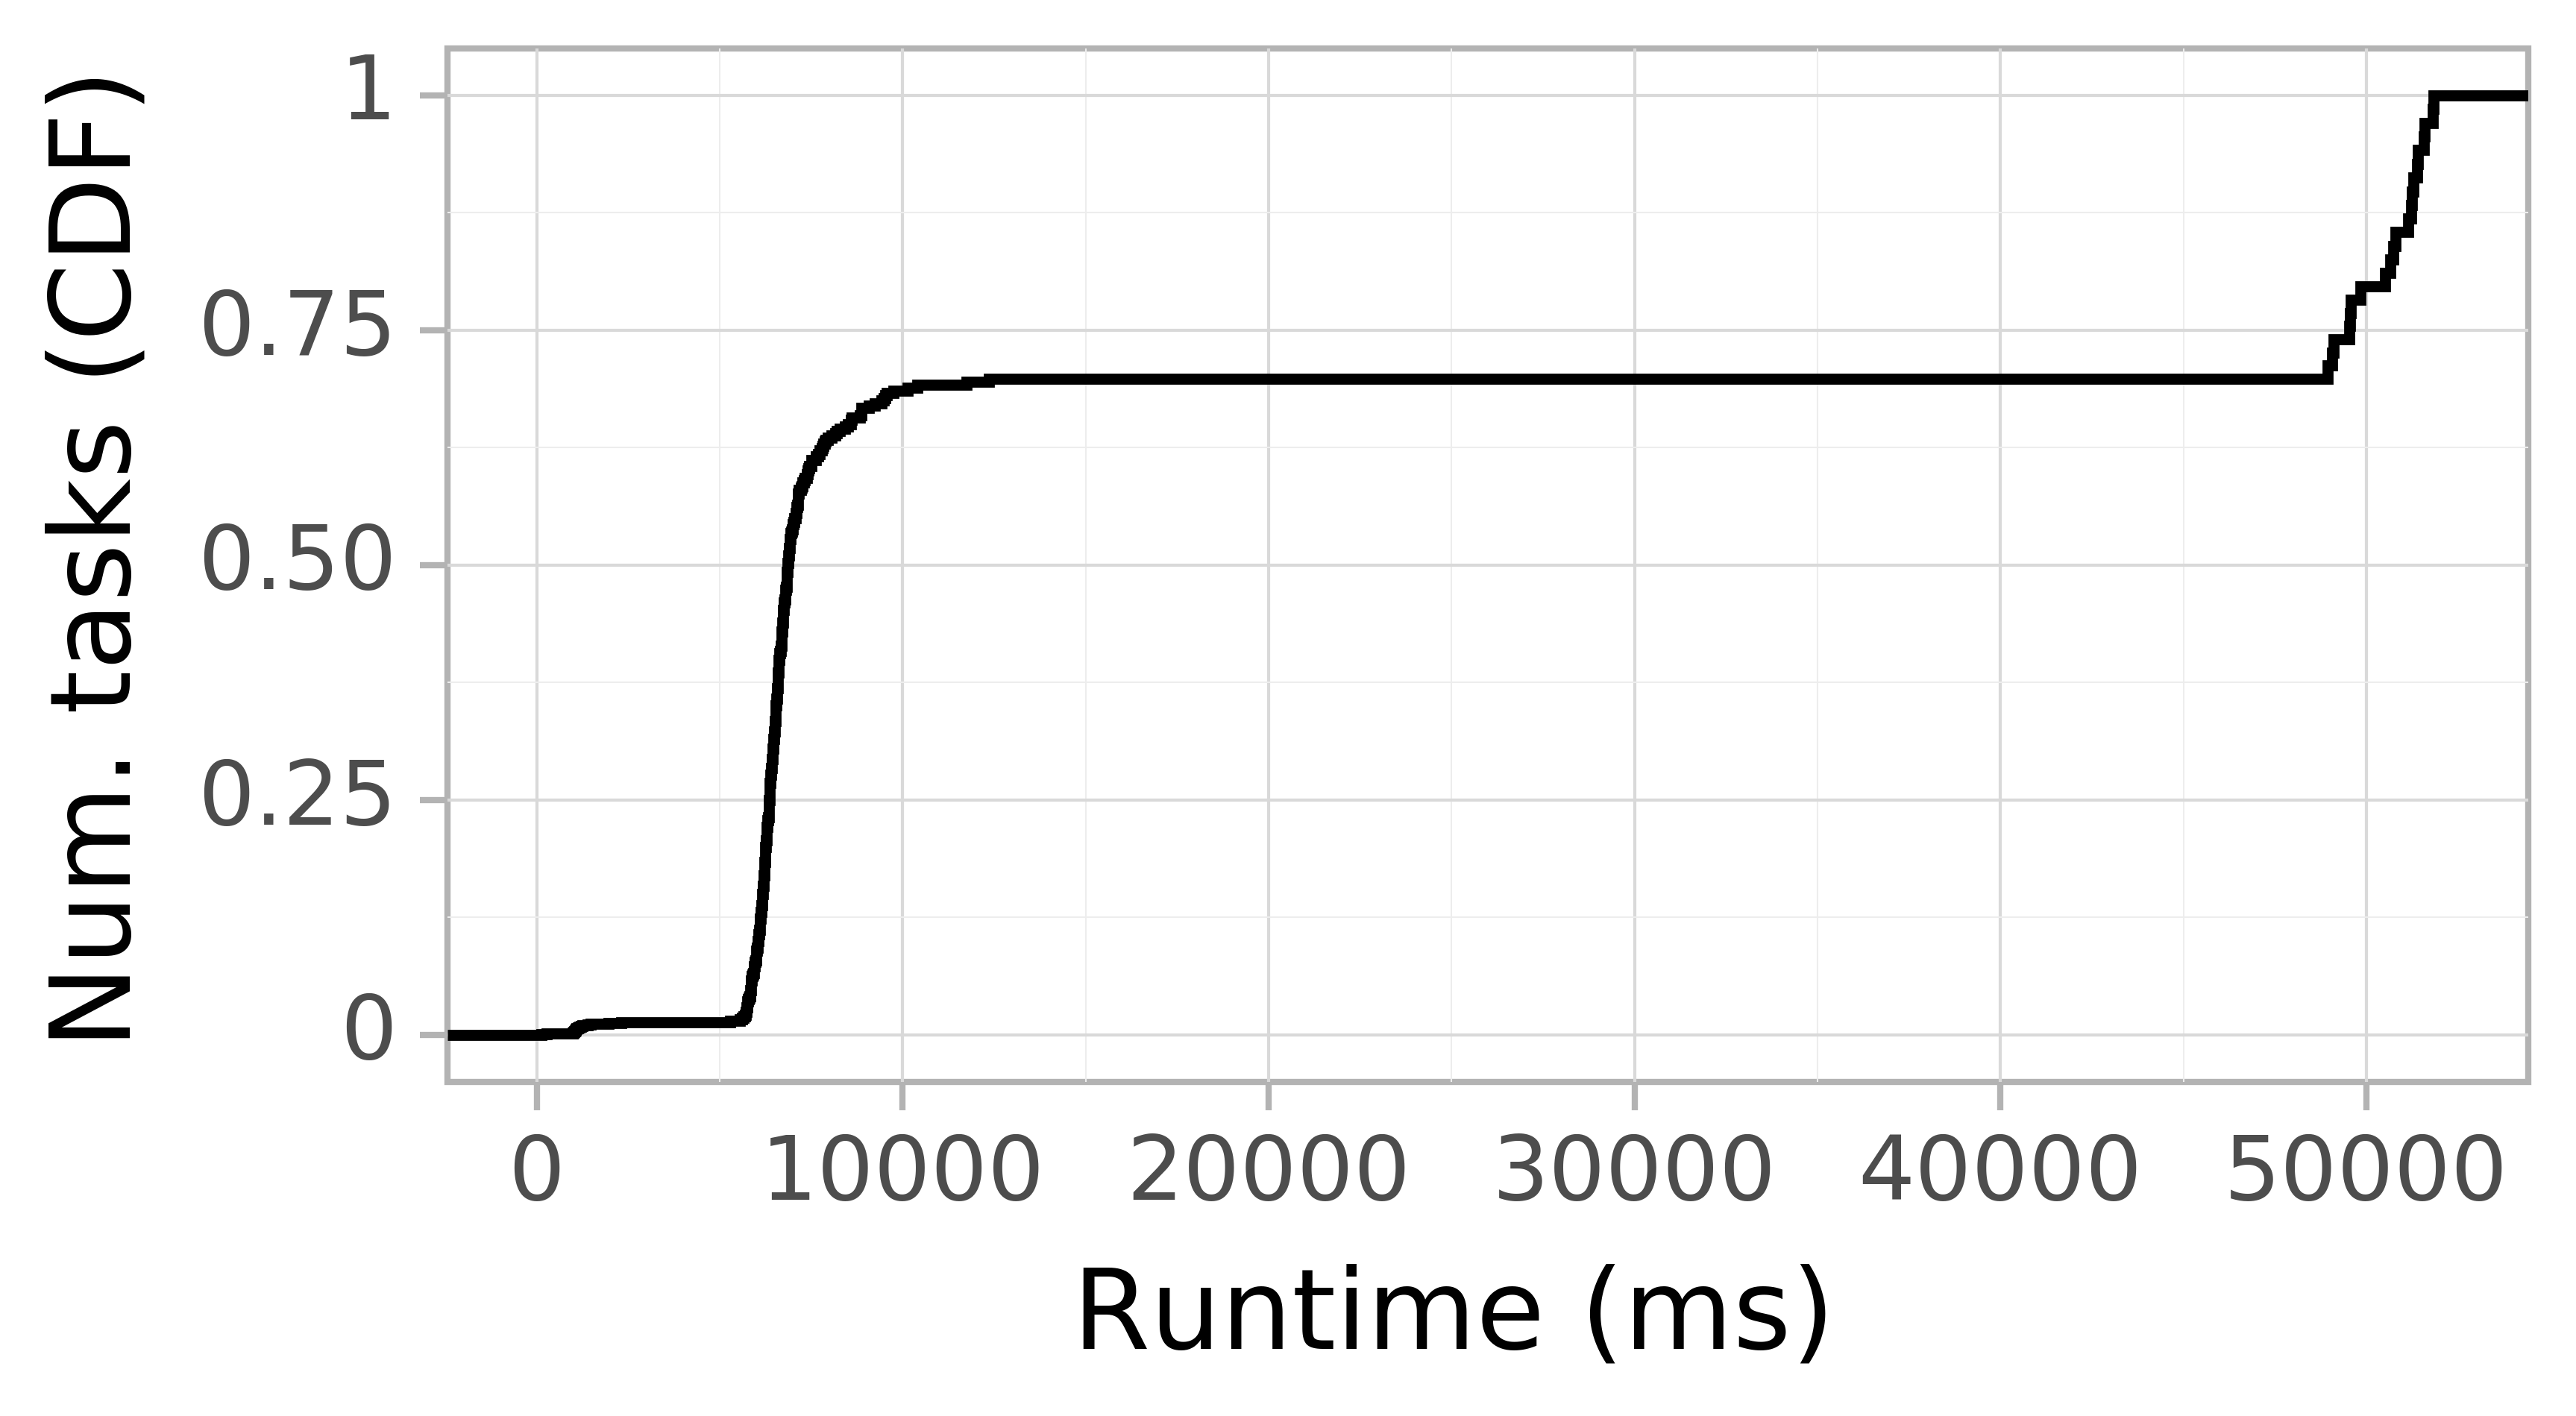 Task runtime CDF graph for the askalon-new_ee61 trace.